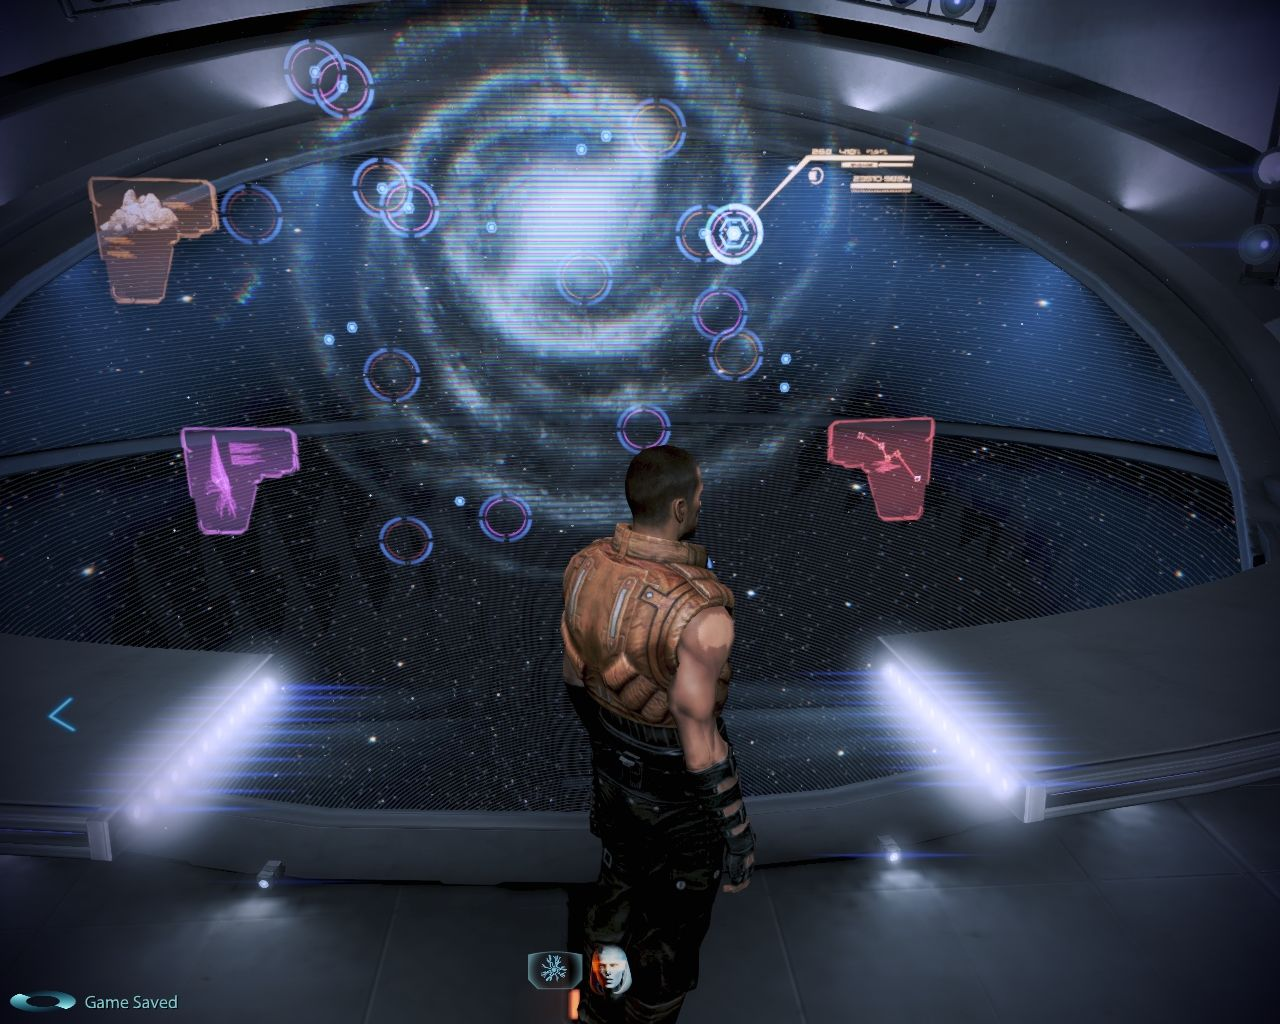 Mass Effect 3: Leviathan Windows Clues to the whereabouts of our next contact have been found an plotted on the lab's star map.